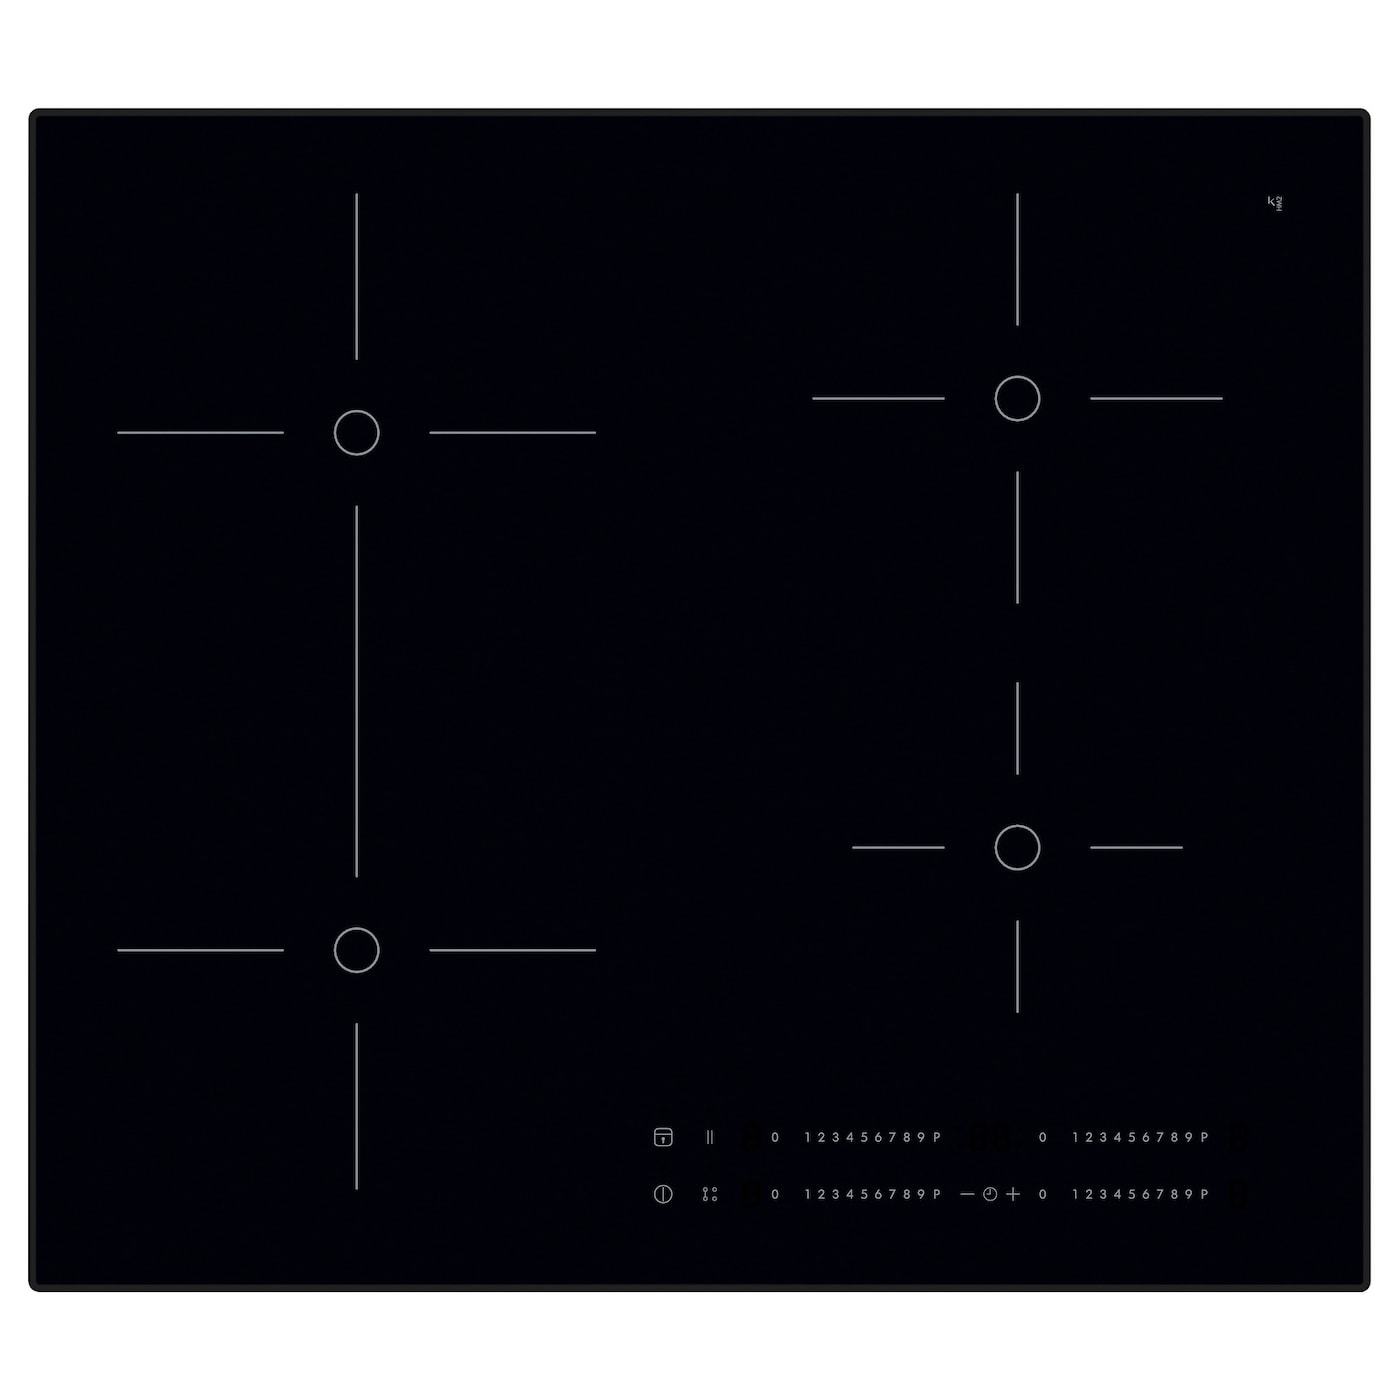 IKEA SMAKLIG induction hob 5 year guarantee. Read about the terms in the guarantee brochure.